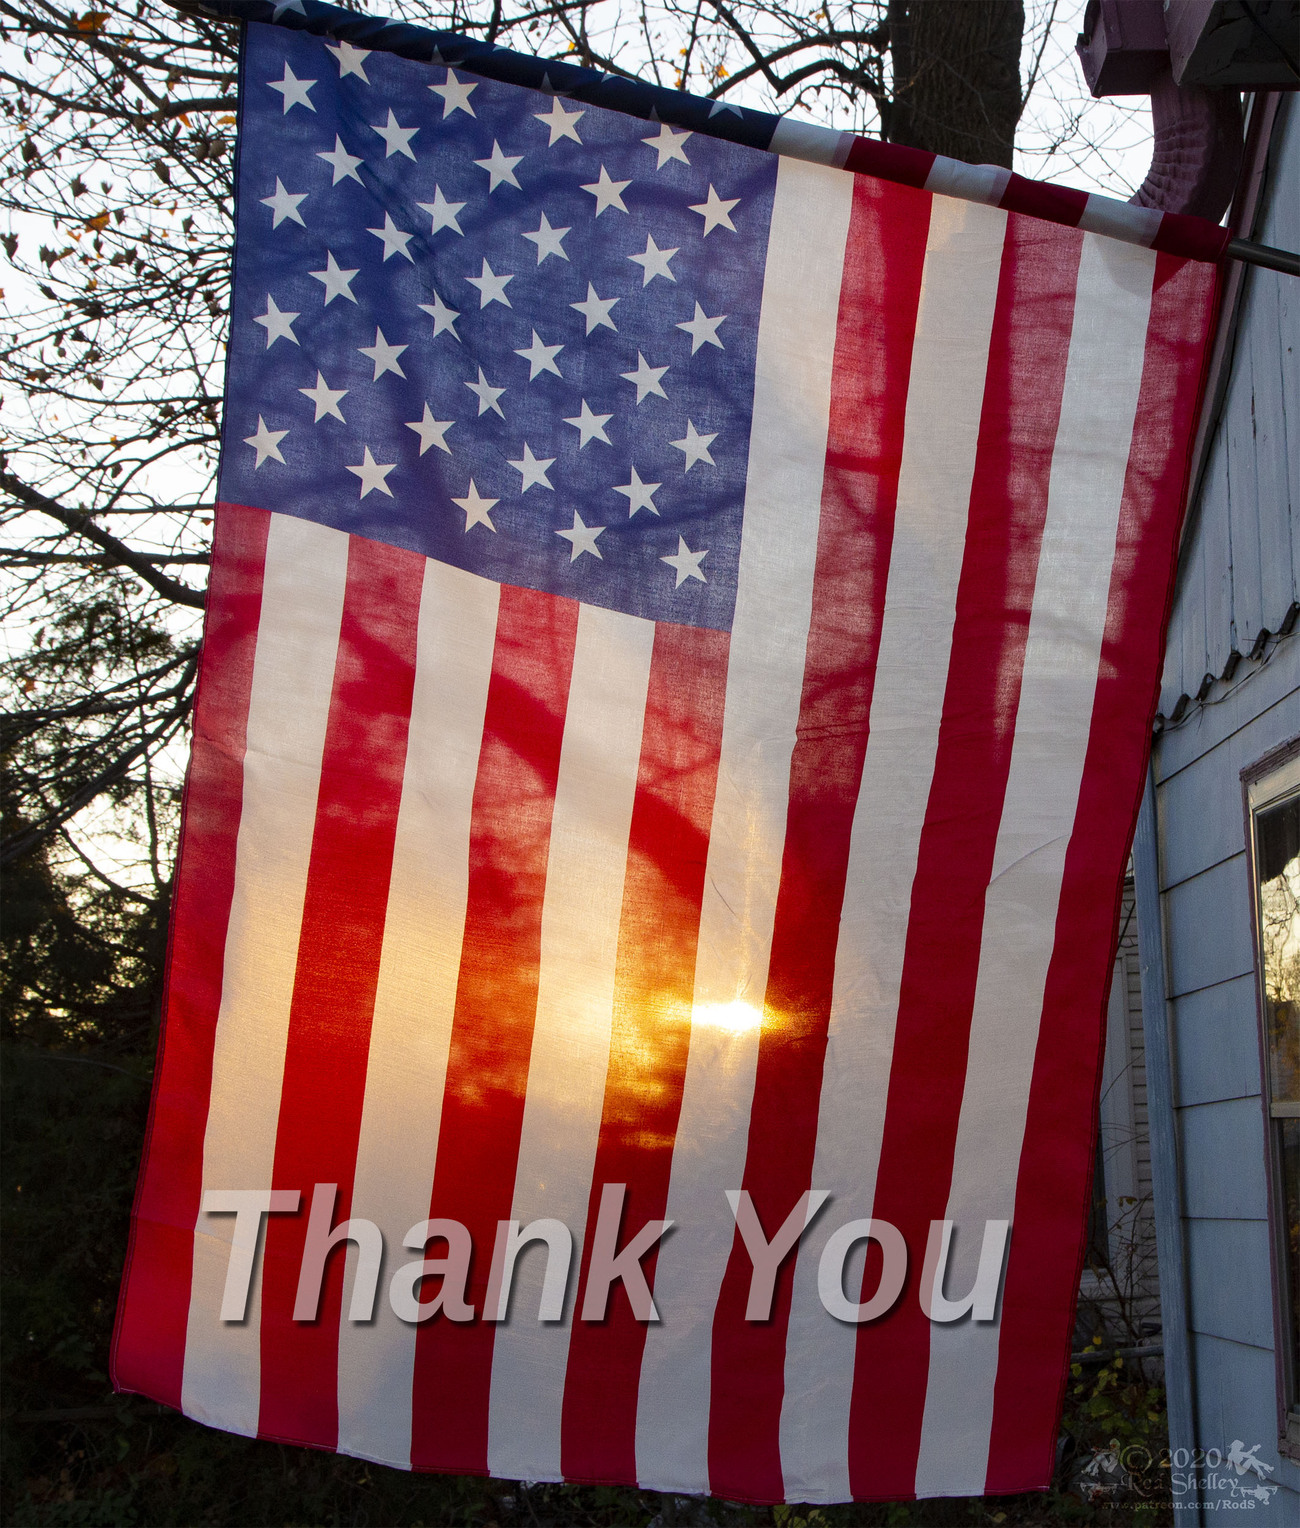 Thank You - Veteran's Day 2020 by RodS